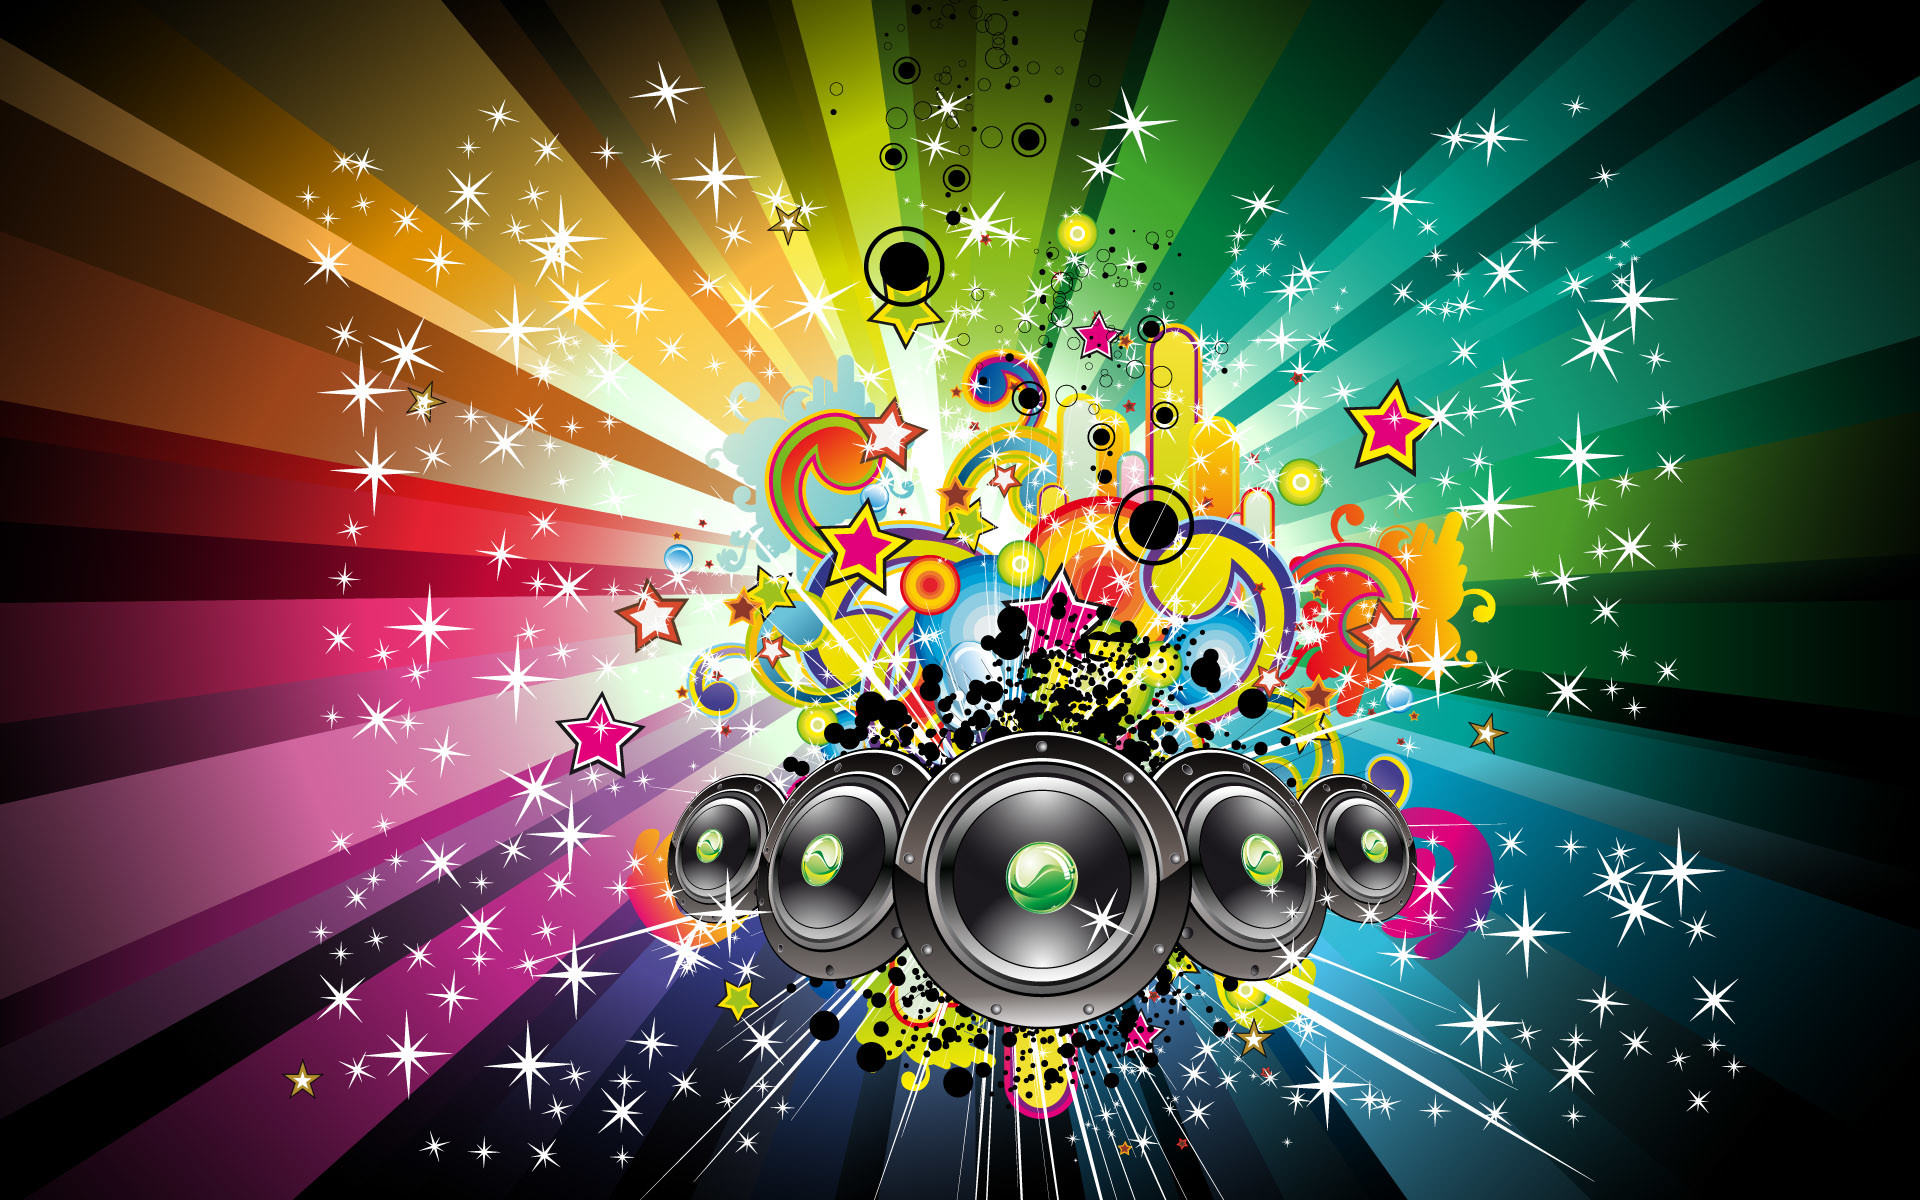 Speakers and rainbow shapes wallpaper – 510170